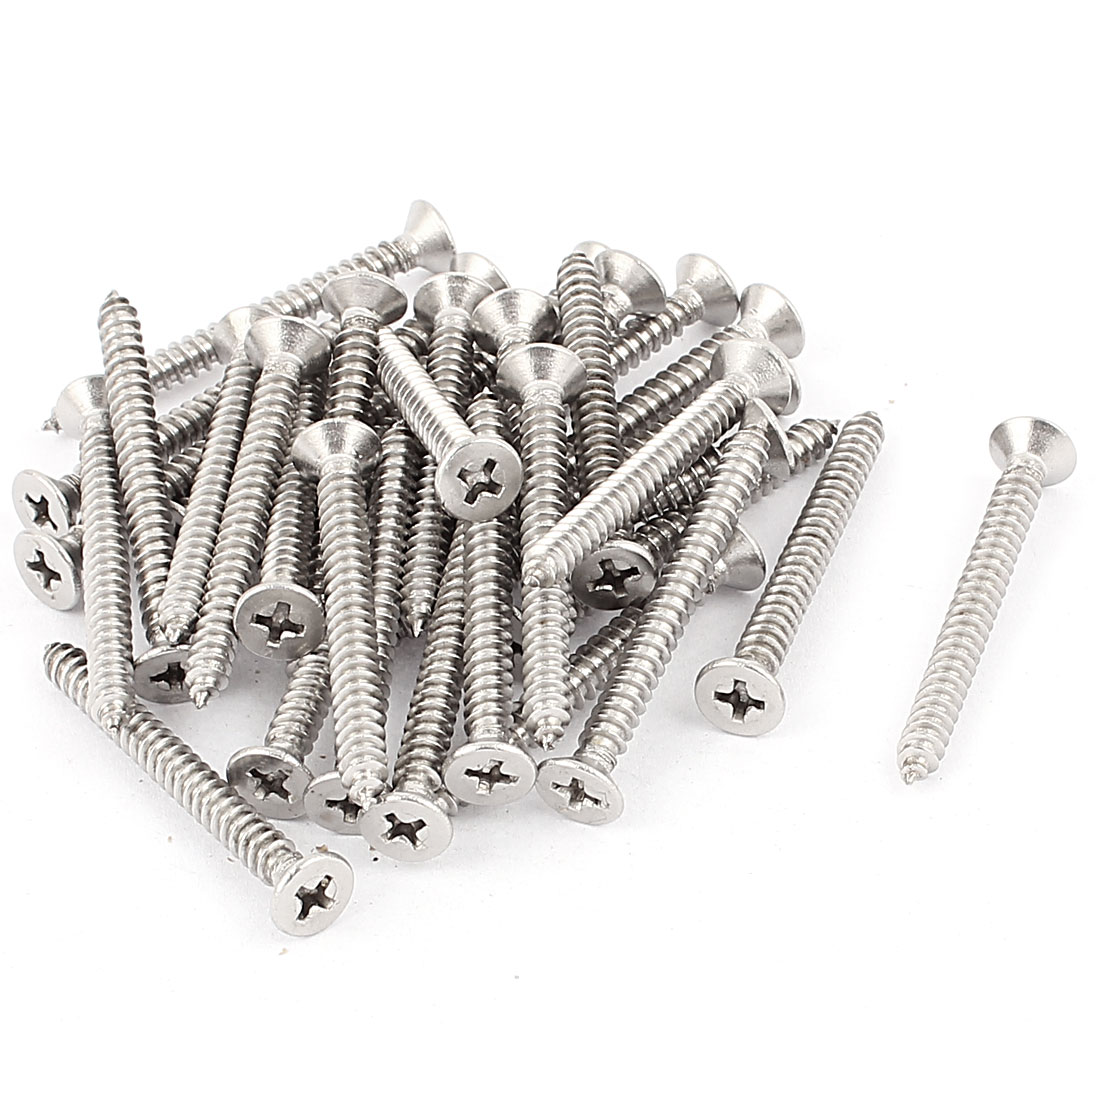 4.8mm x 50mm Countersunk Cross Head Self Tapping Screw Fasteners 35 Pcs